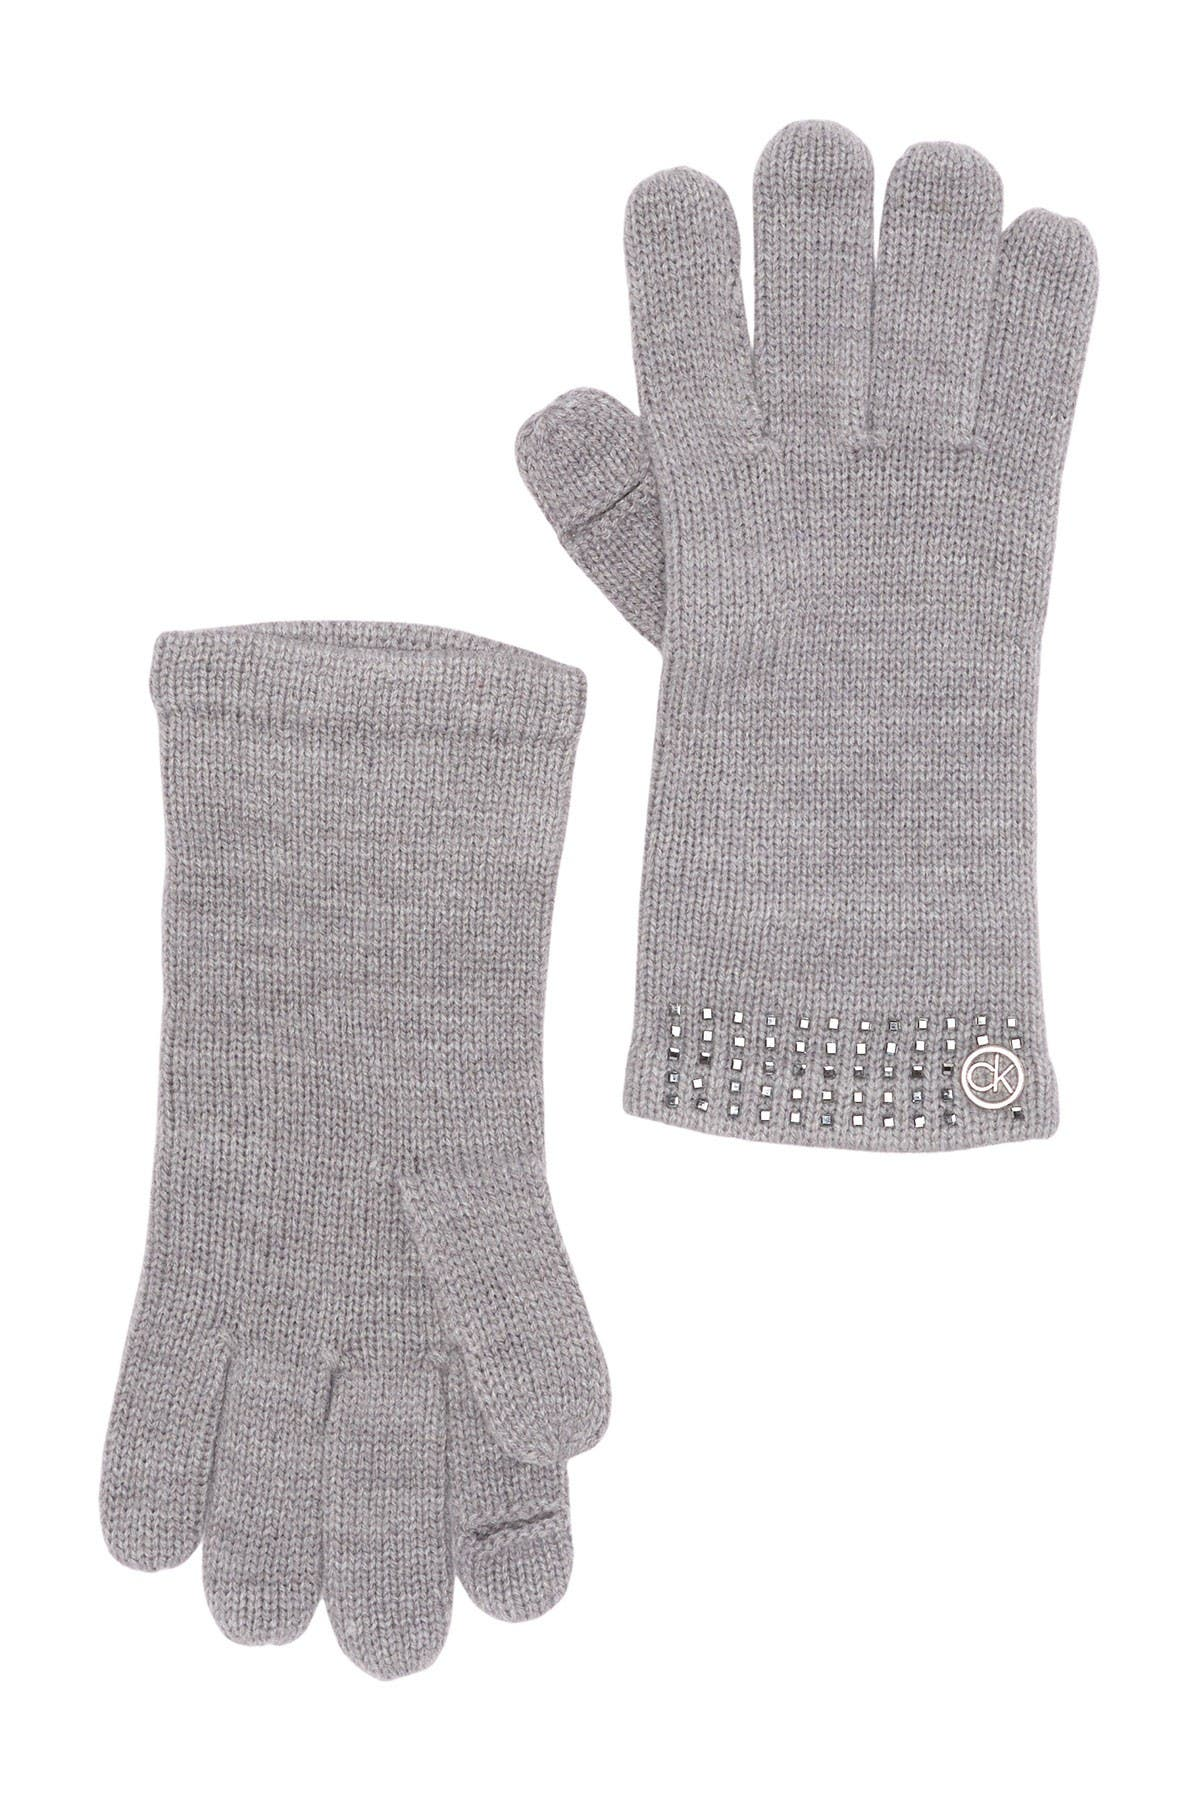 Image of Calvin Klein Square Studded Gloves